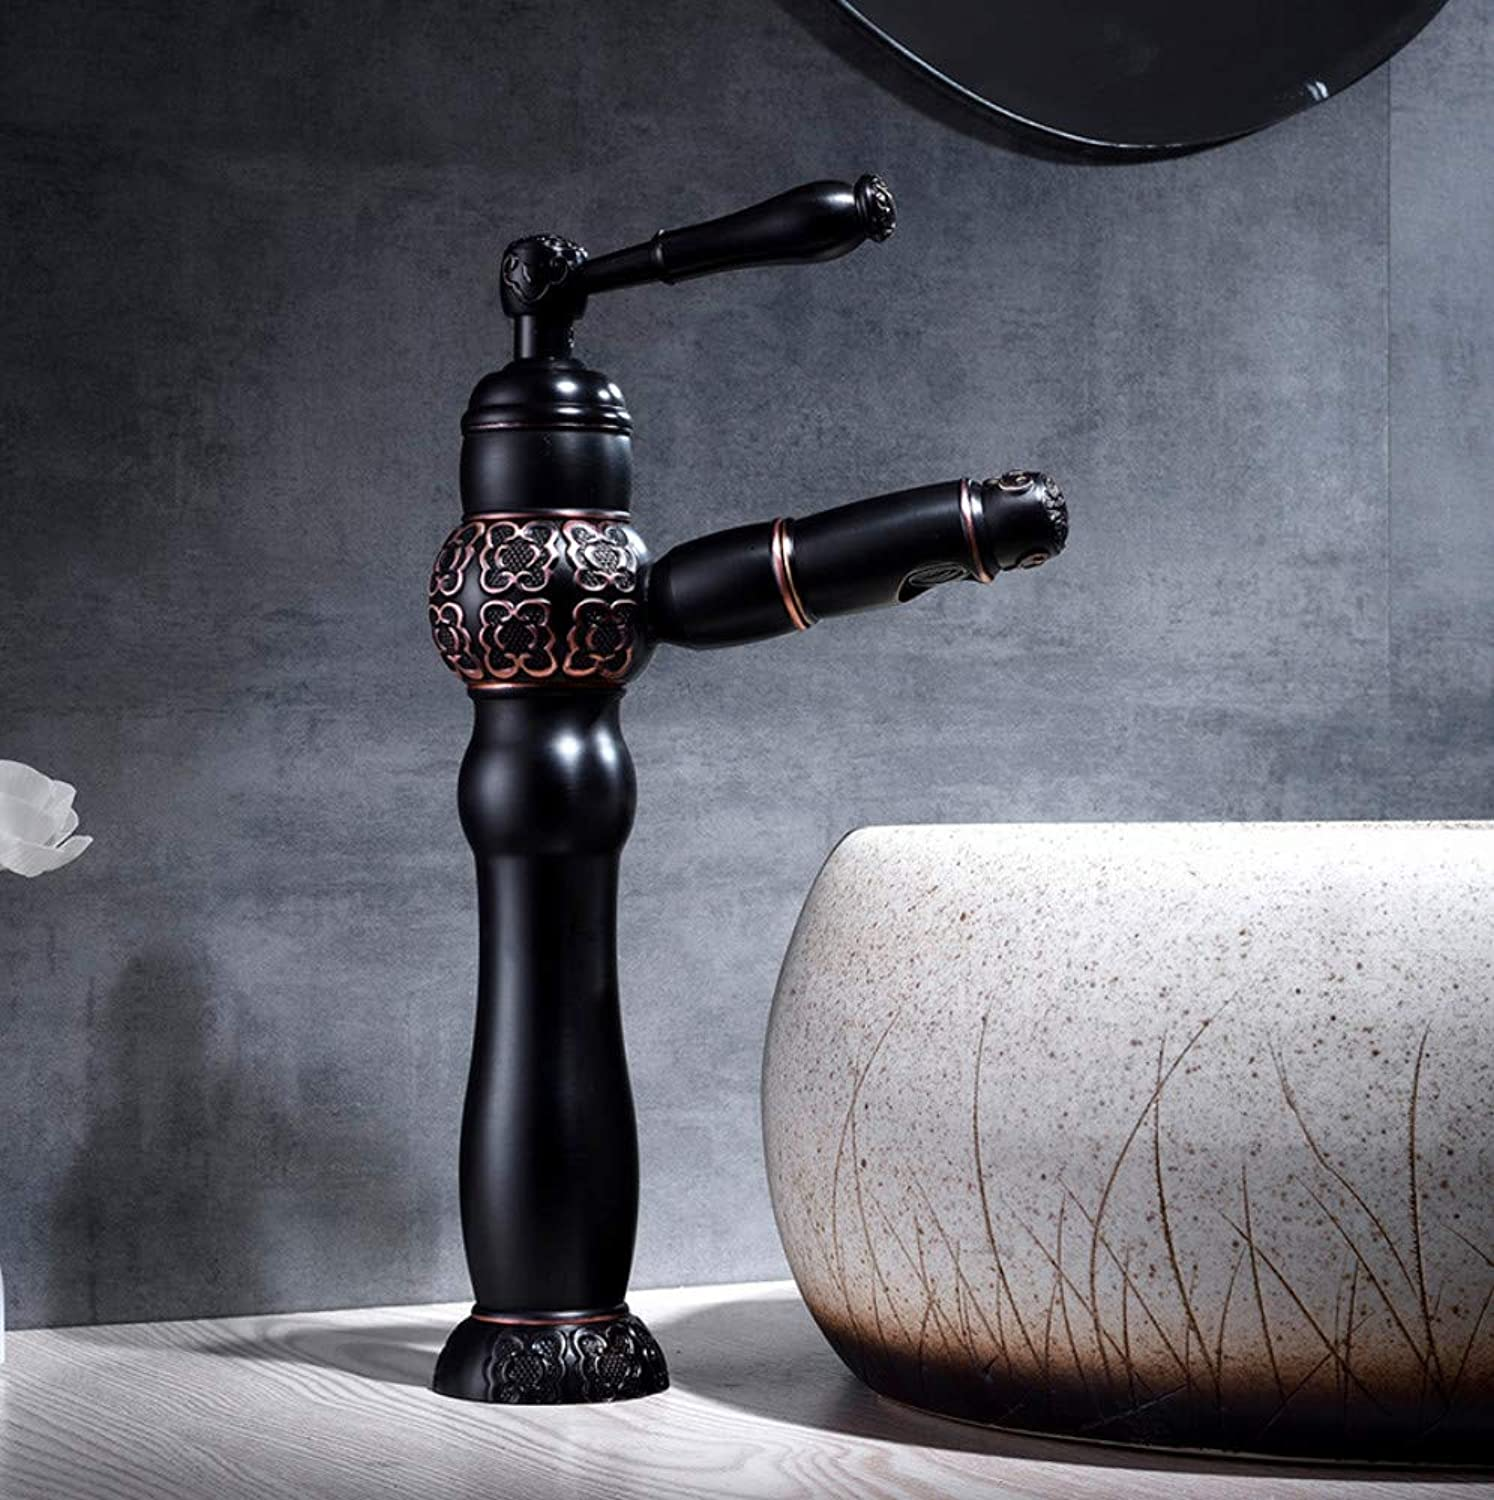 Ayhuir Basin Faucets Black Bronze Pull Out and Down Bathroom Faucet Kitchen Sink Faucet Toilet Mixer Vintage Carving Tap Hot Cold Water